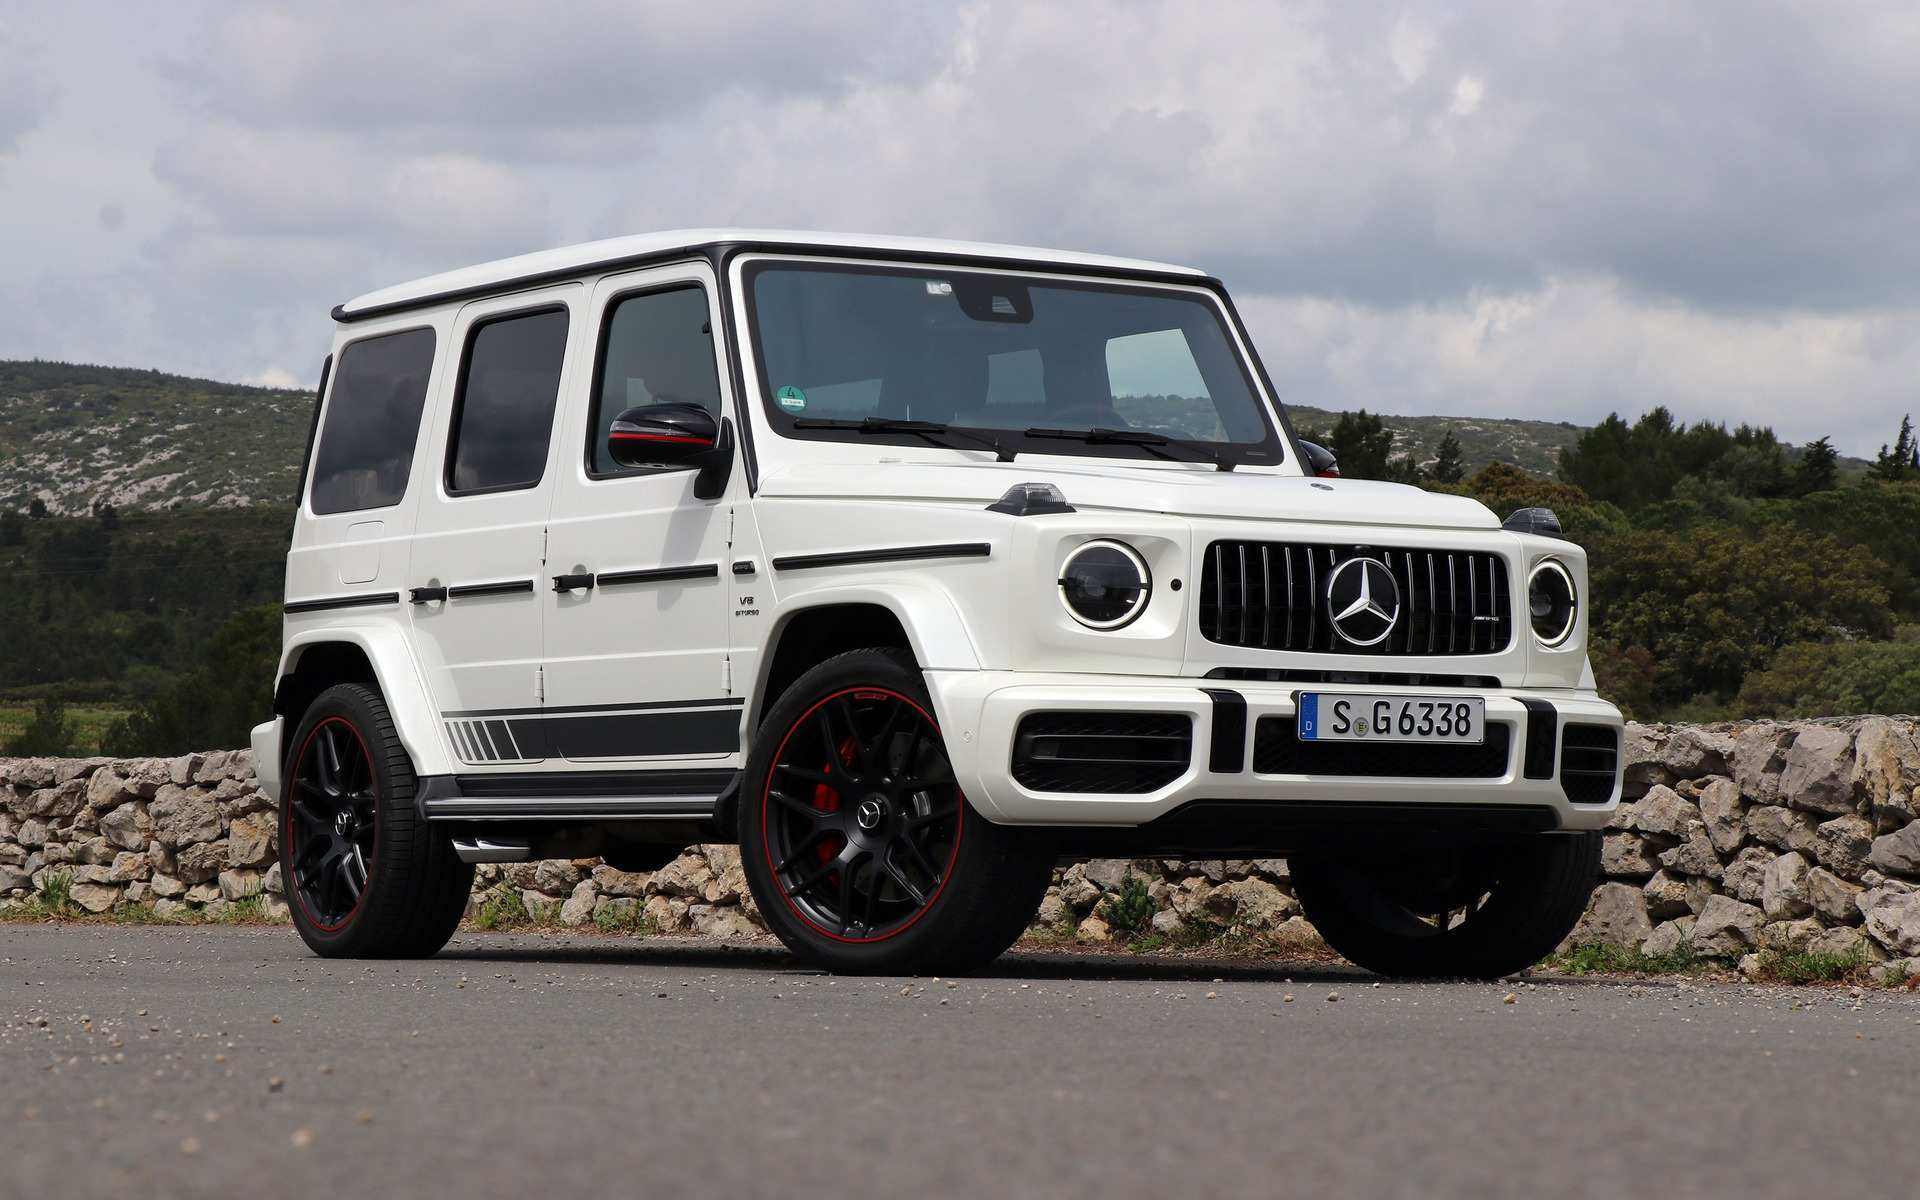 64 Great 2019 Mercedes G Wagon For Sale Price Redesign for 2019 Mercedes G Wagon For Sale Price